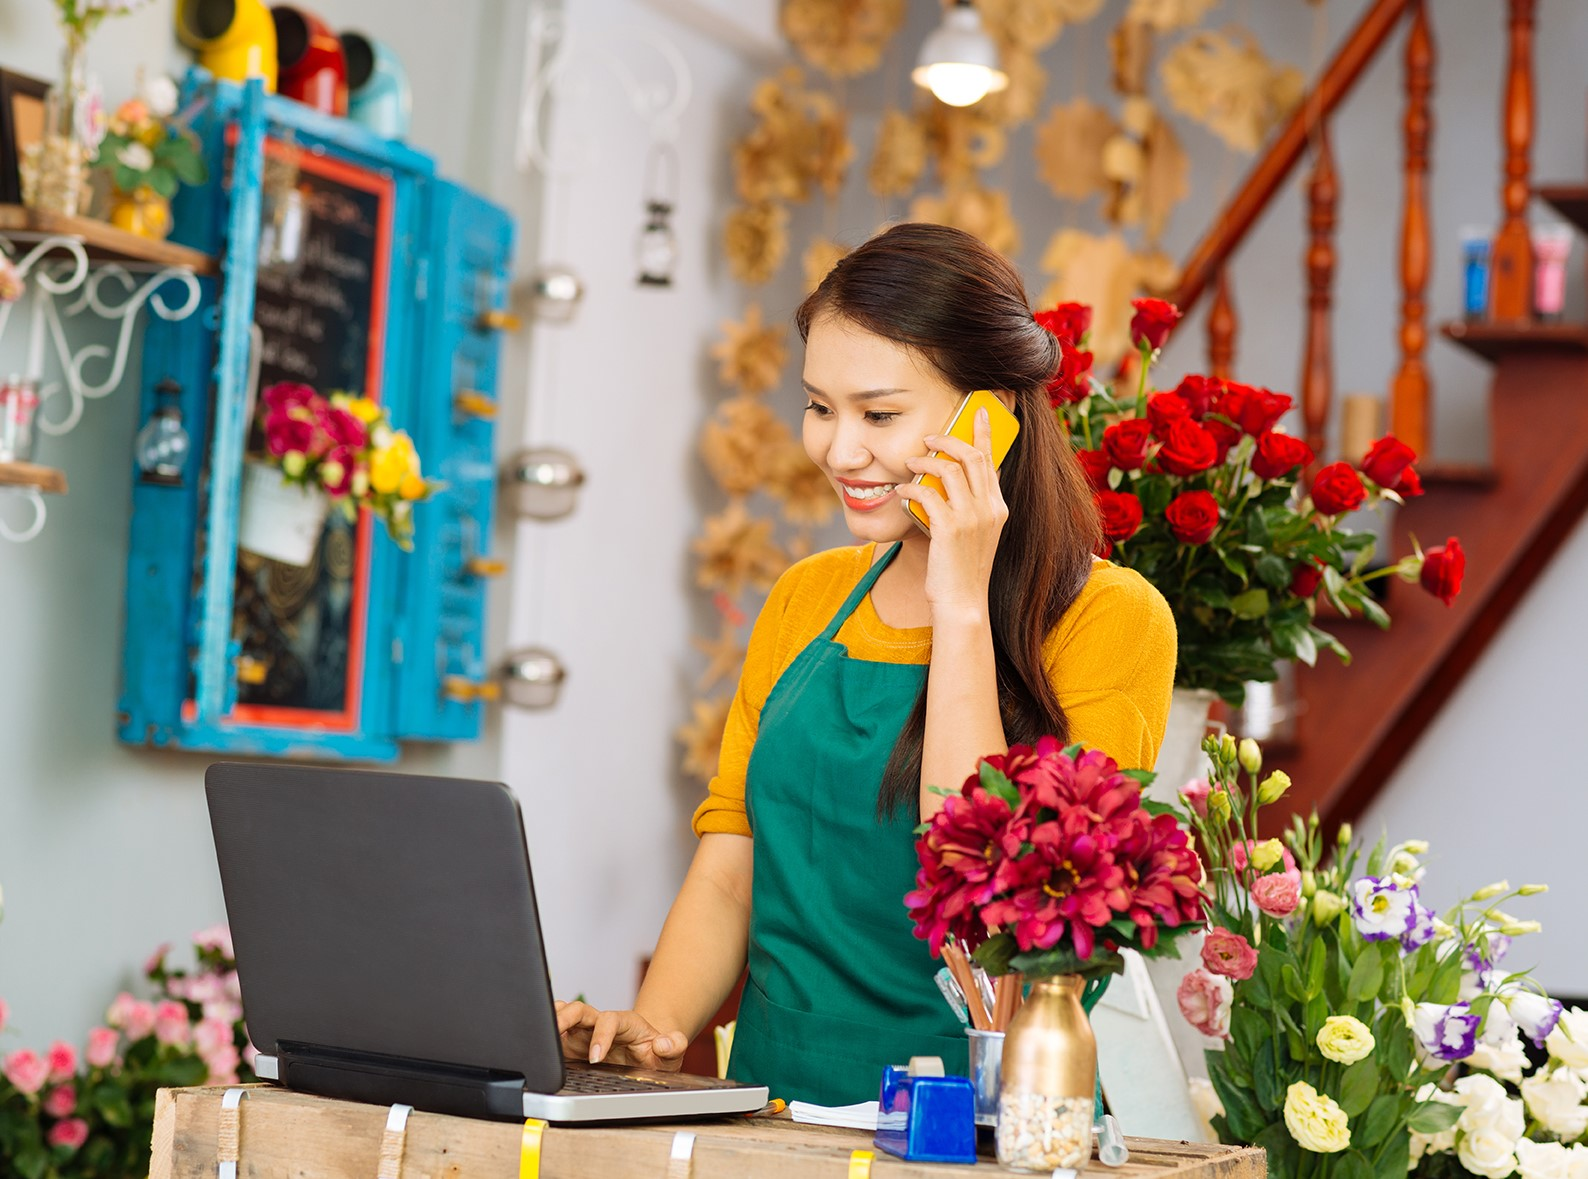 Delivering omnichannel customer experience to the SME market